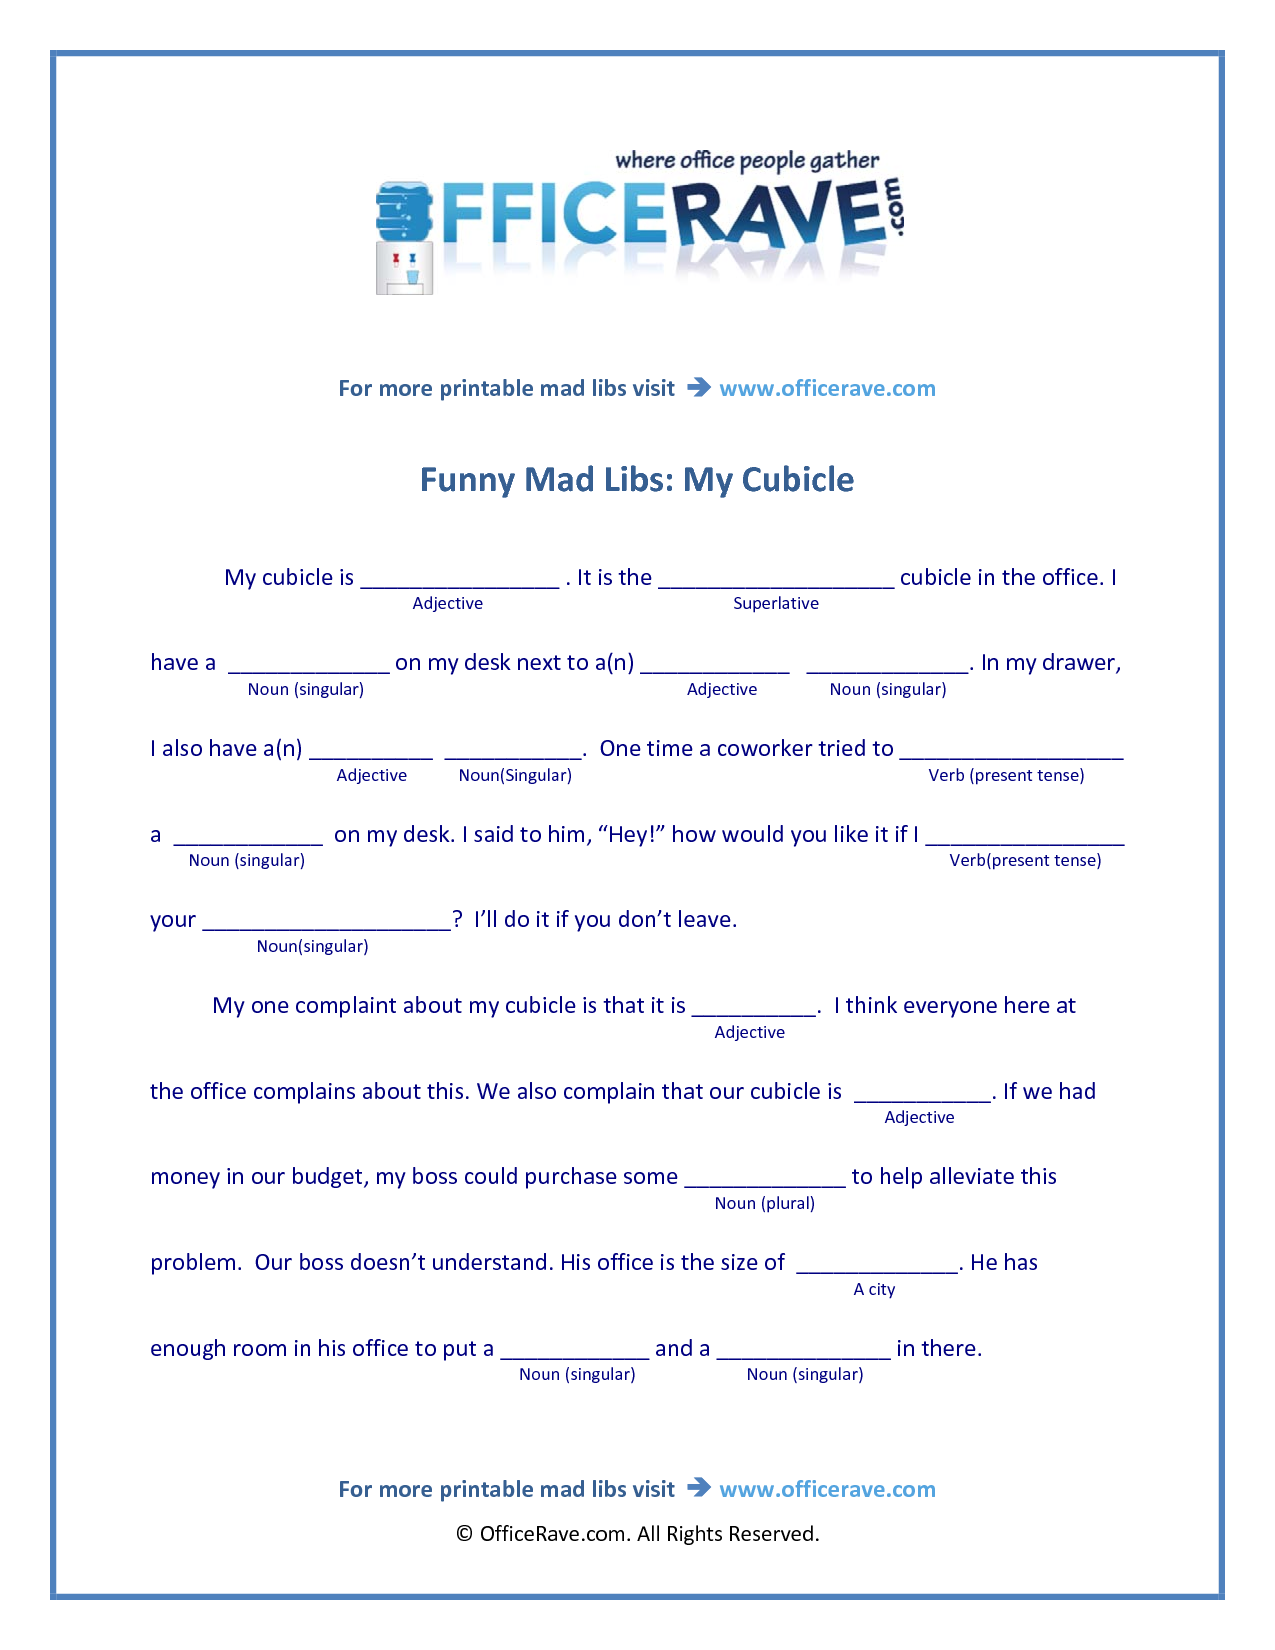 image relating to Office Mad Libs Printable identify insane libs printable Absolutely free Printable Nuts Libs humorous Little one